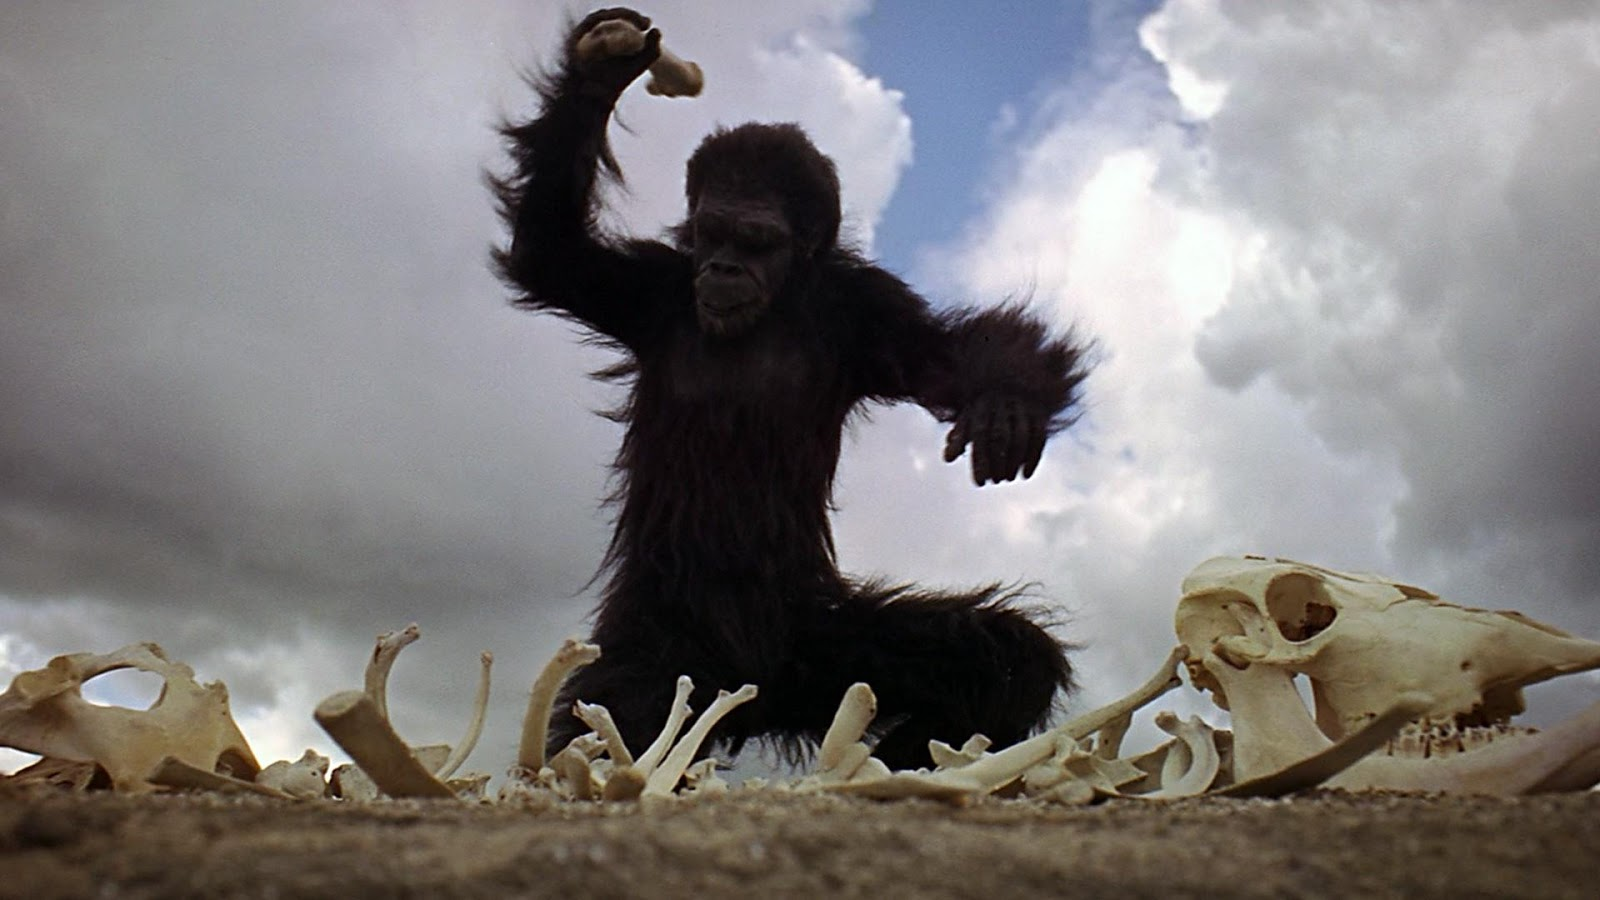 a review of stanley kubricks film 2001 a space odyssey '2001: a space odyssey': kubrick's sci-fi film was hardly seen as a classic in newsweek's 1968 review rightly hailed today as a science-fiction classic and a trailblazing piece of moviemaking, director stanley kubrick's cerebral 2001: a space odyssey was met with far different reactions after its.